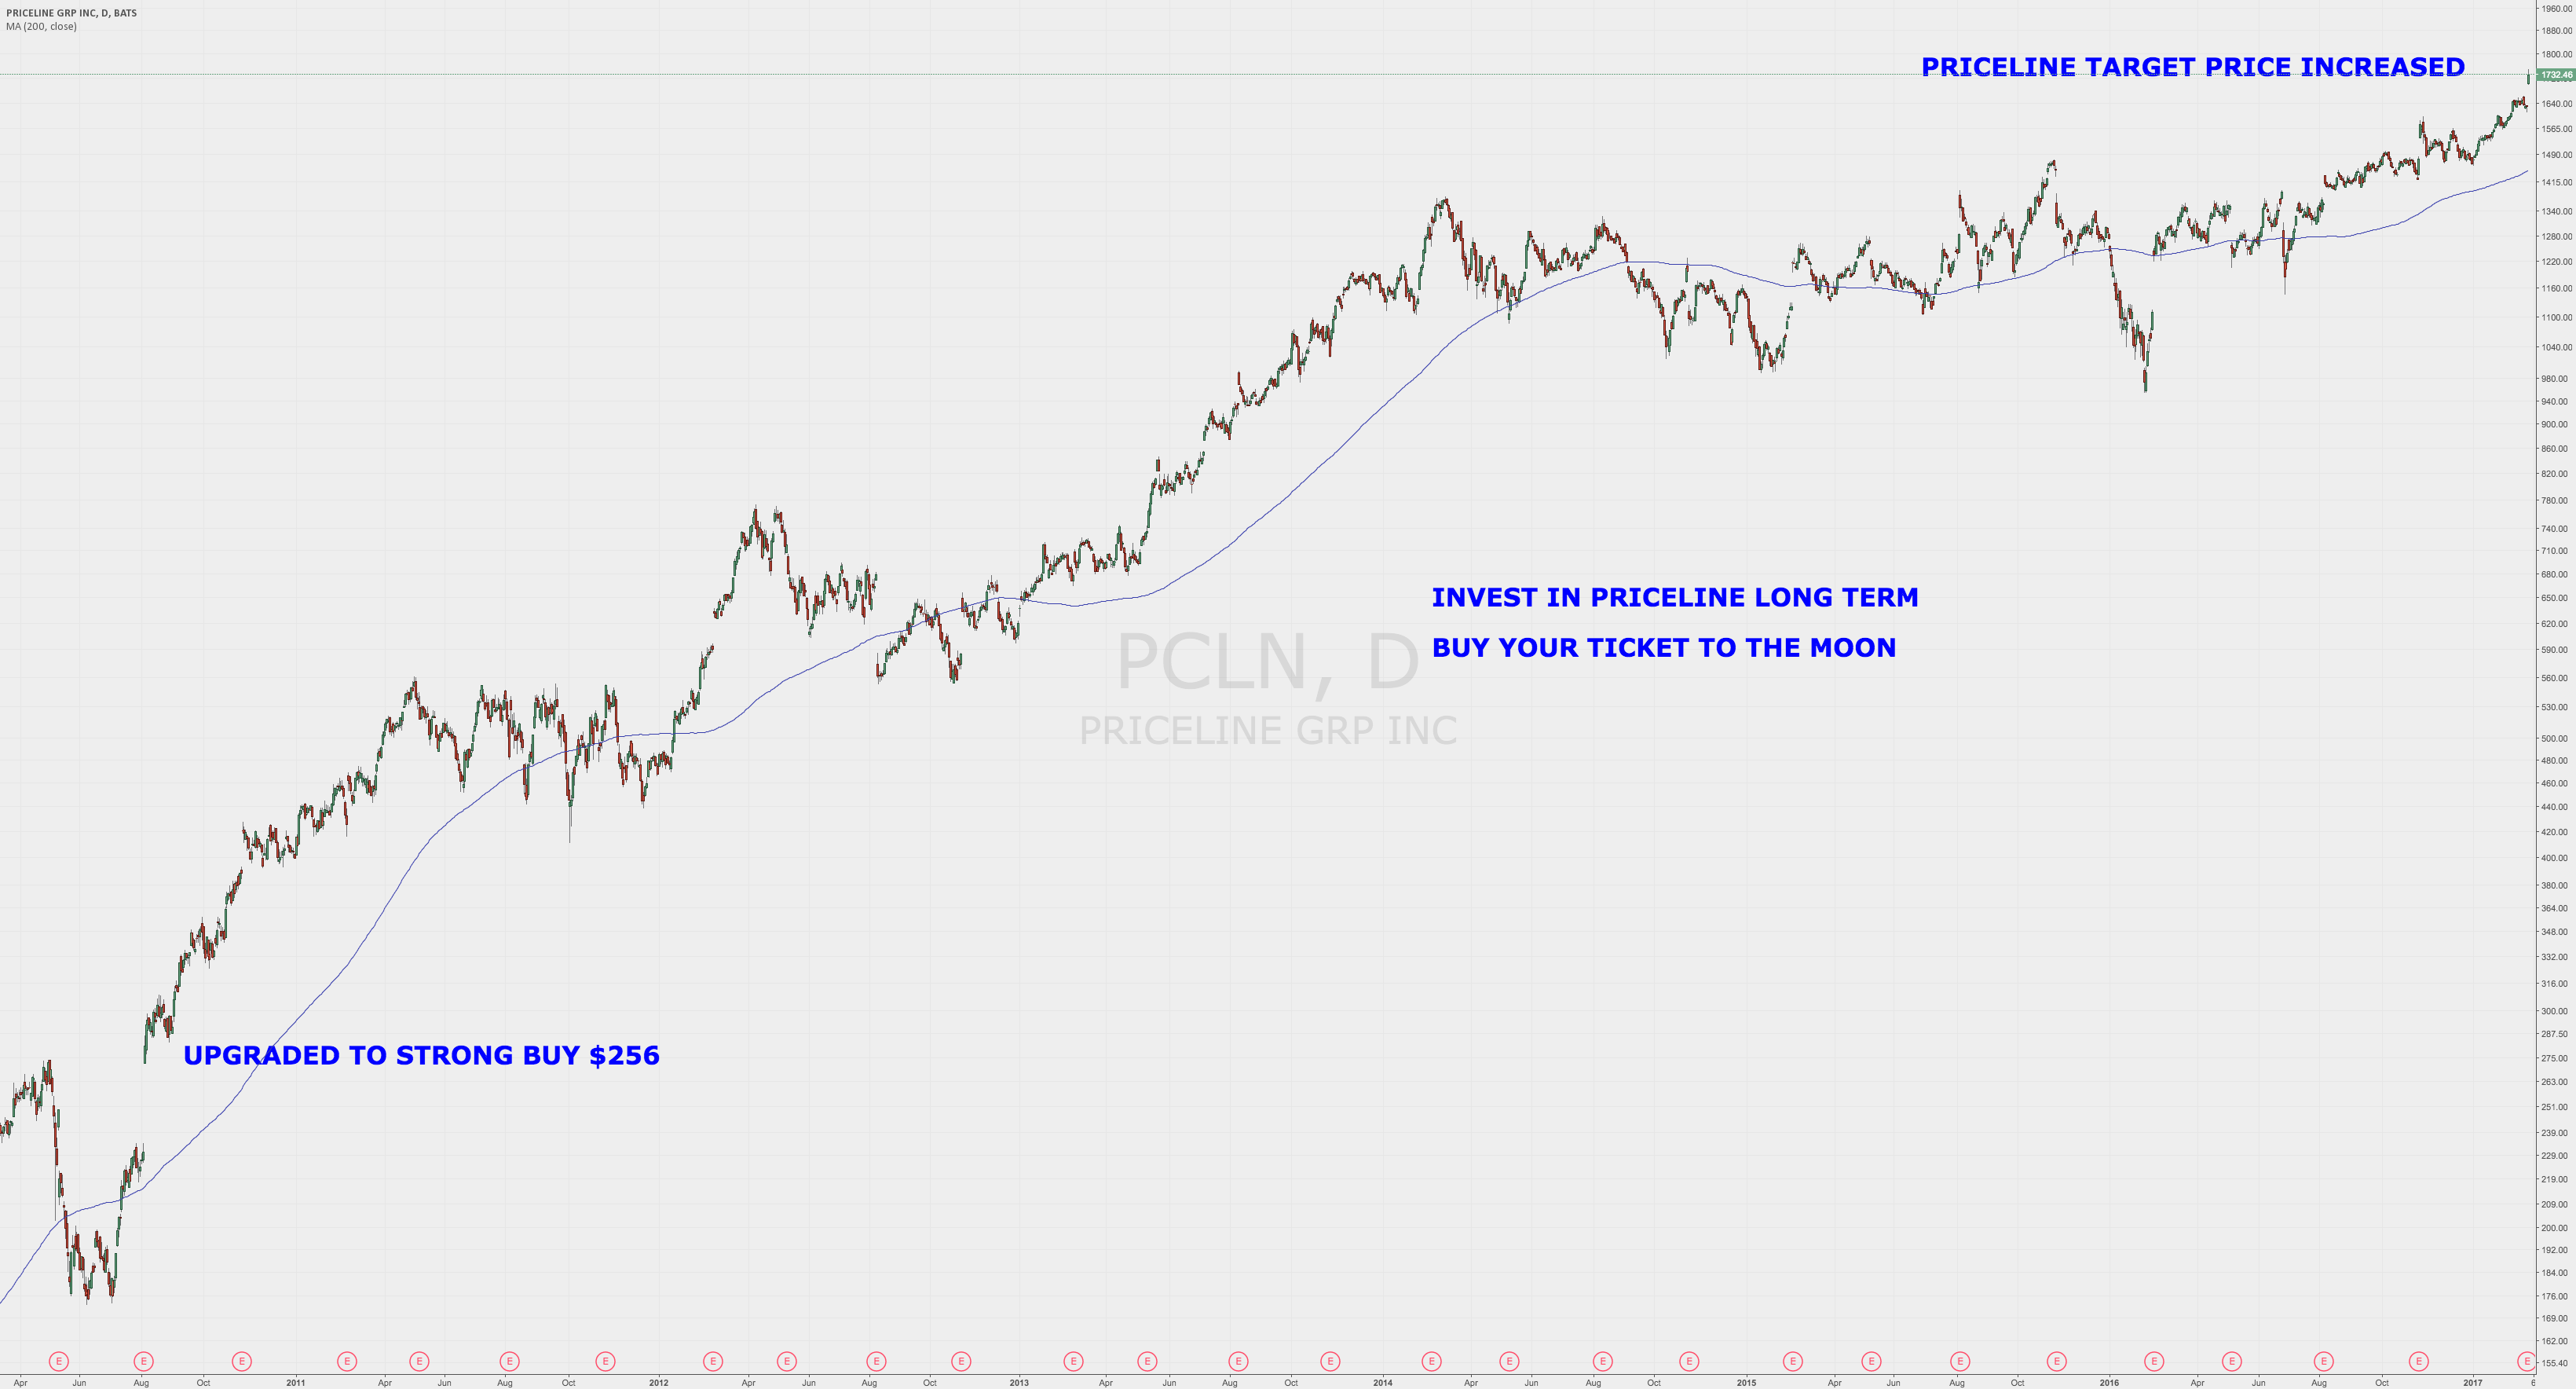 Buy Your Ticket to the Moon. Invest in Priceline $PCLN long term